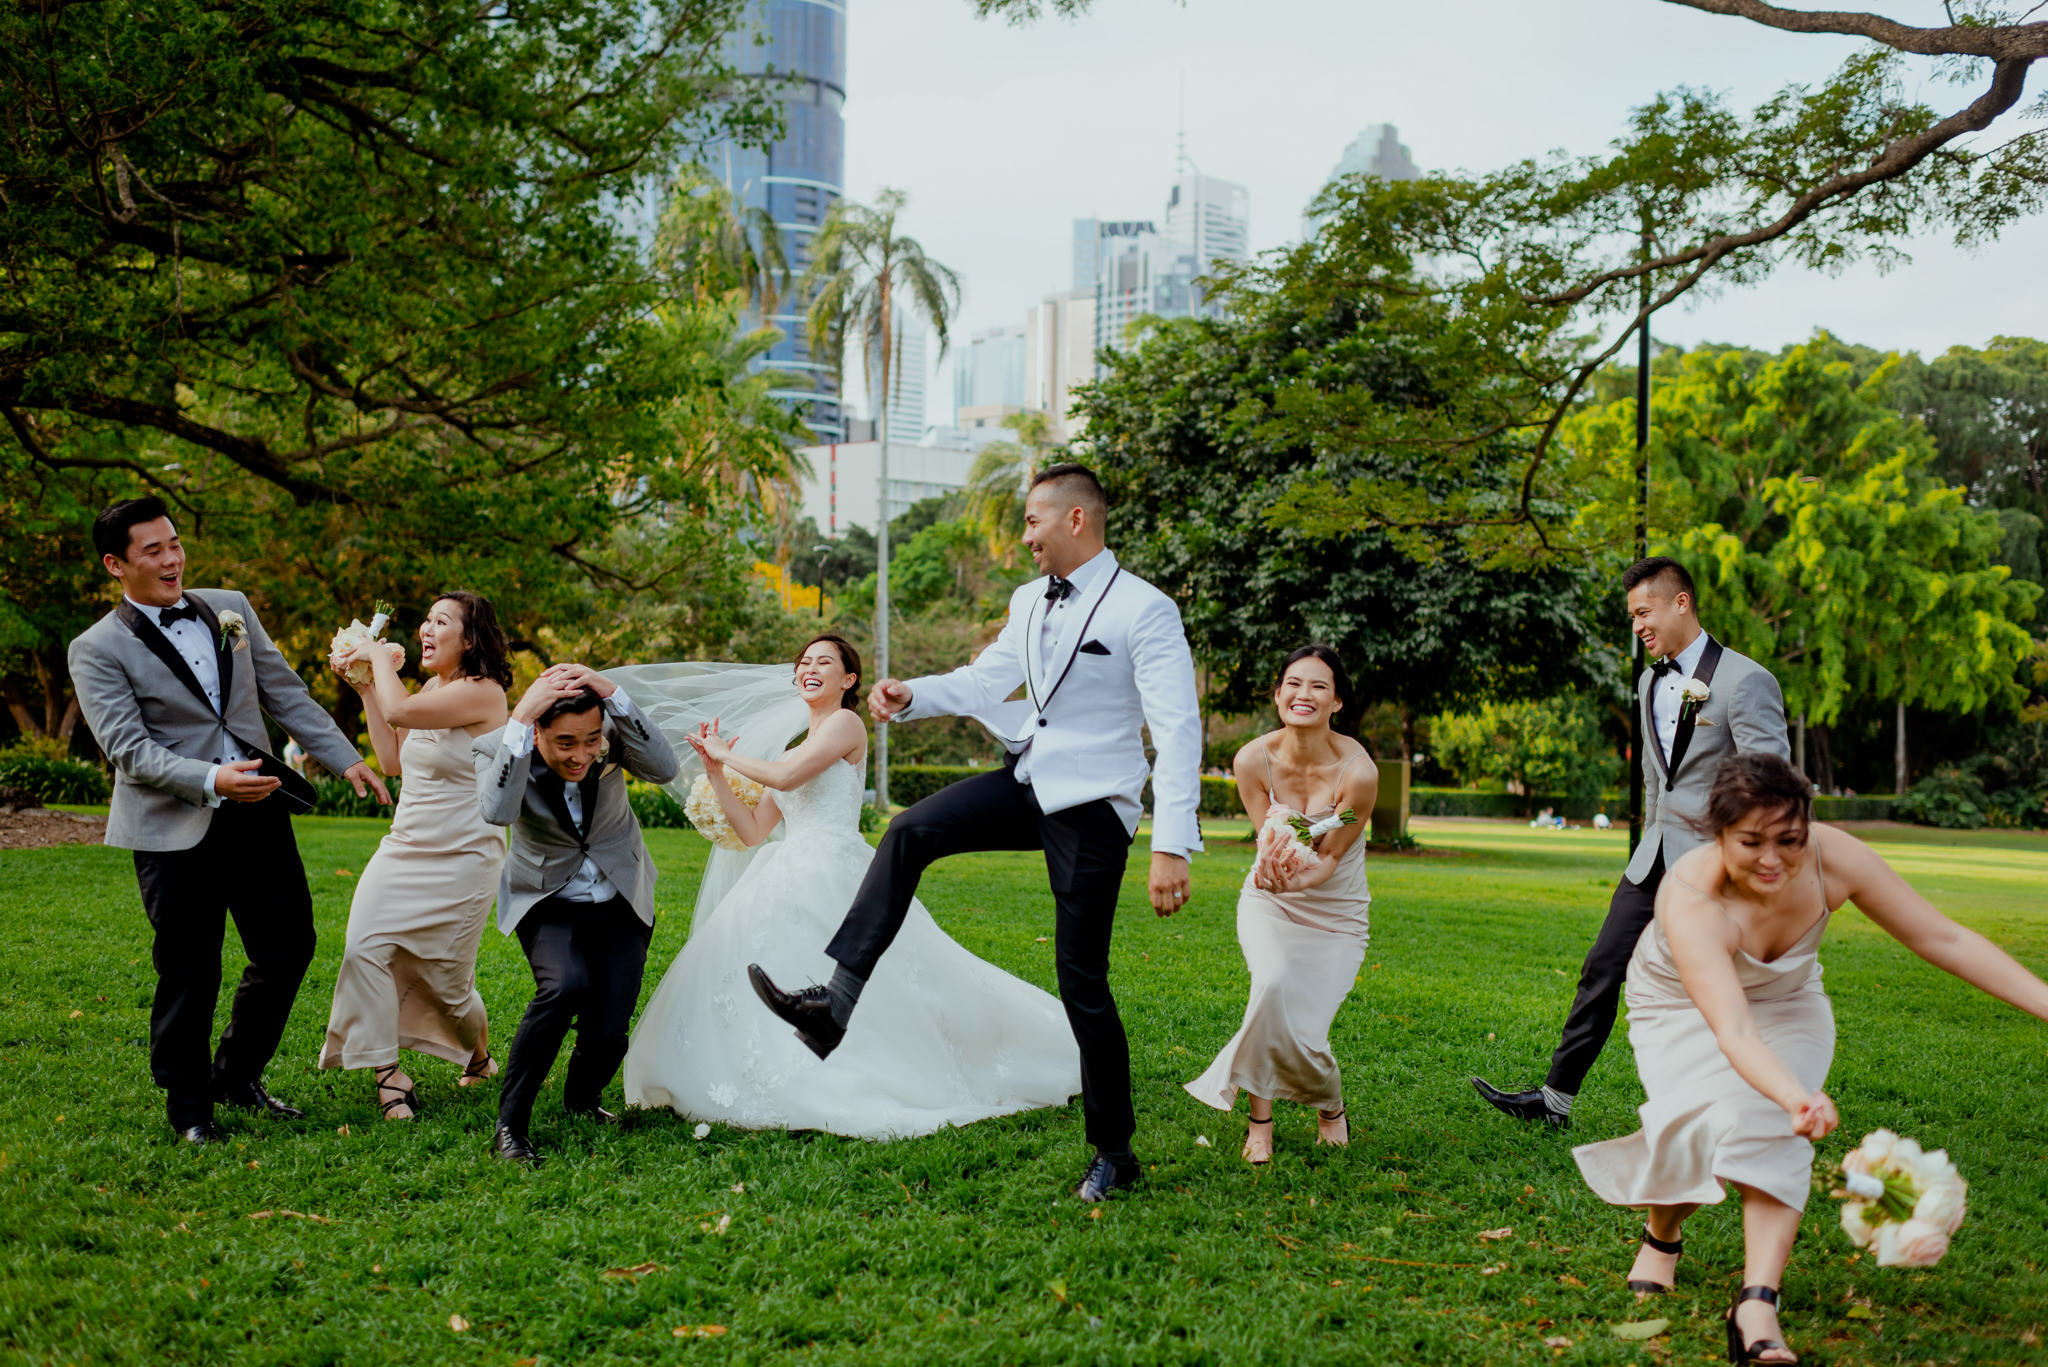 A wedding party look chaotic in a luscious green garden